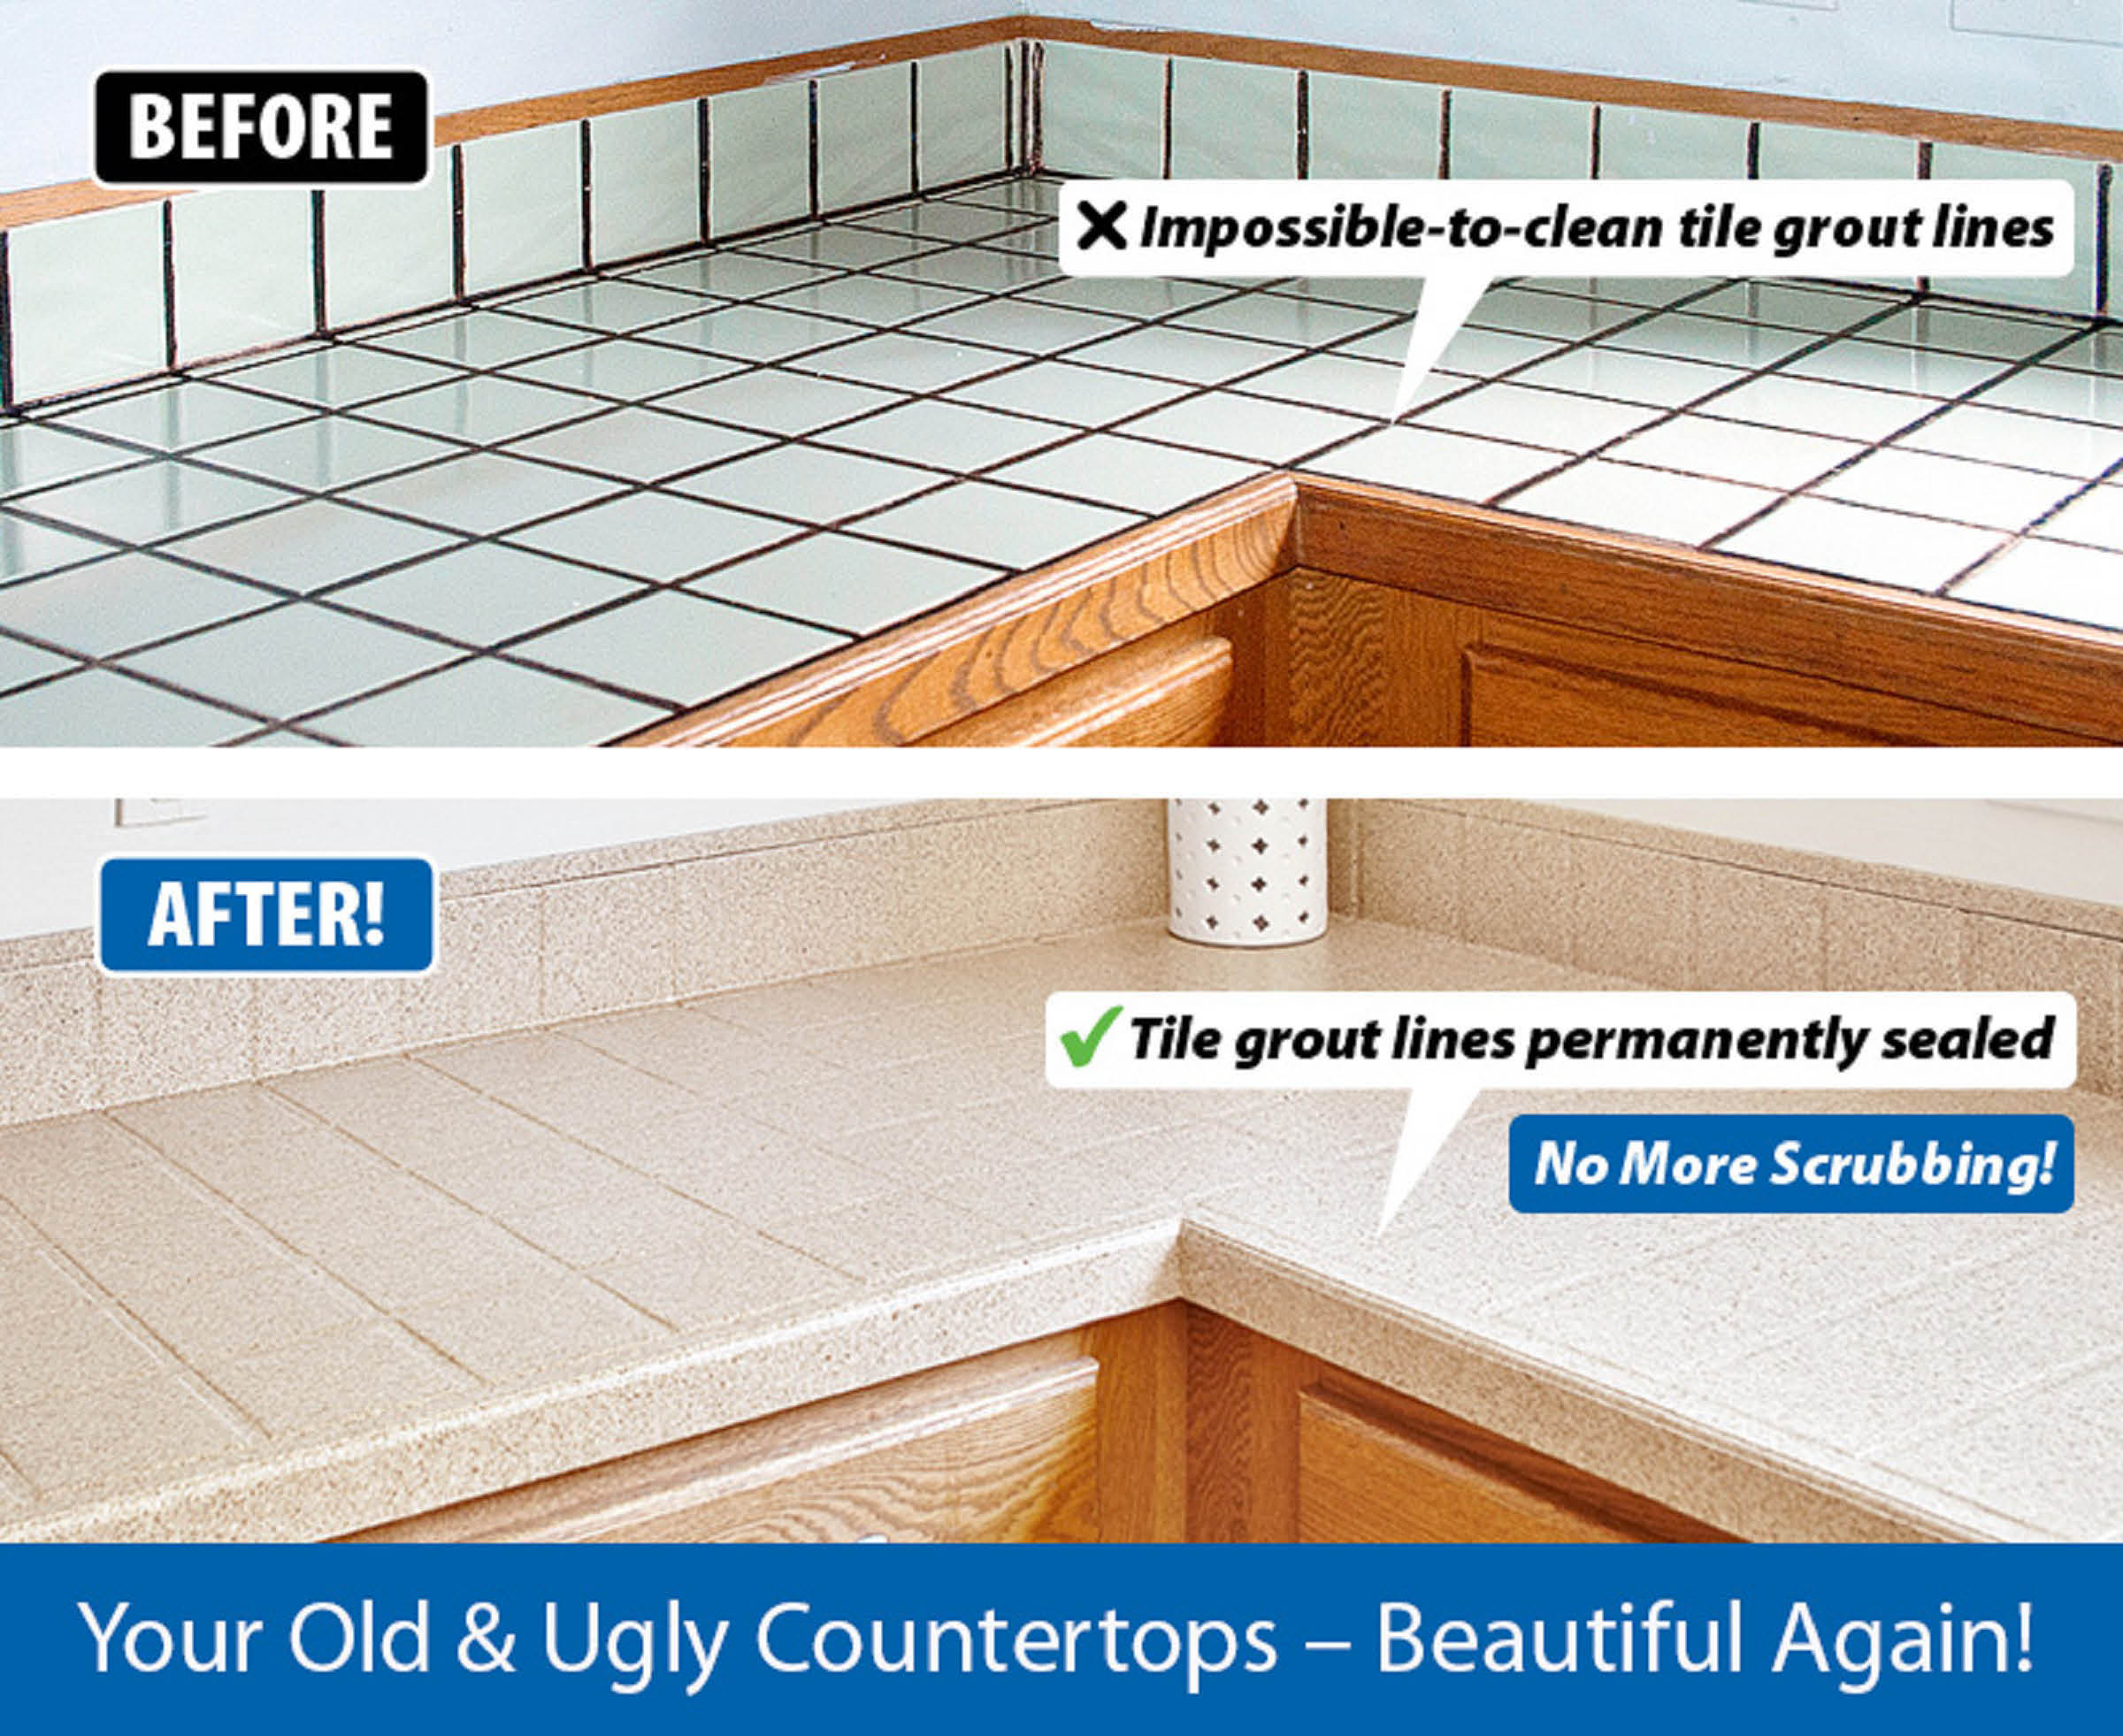 Bathtub Refinishing Shower Tiles Surface Refinishing - Kitchen and bathroom resurfacing